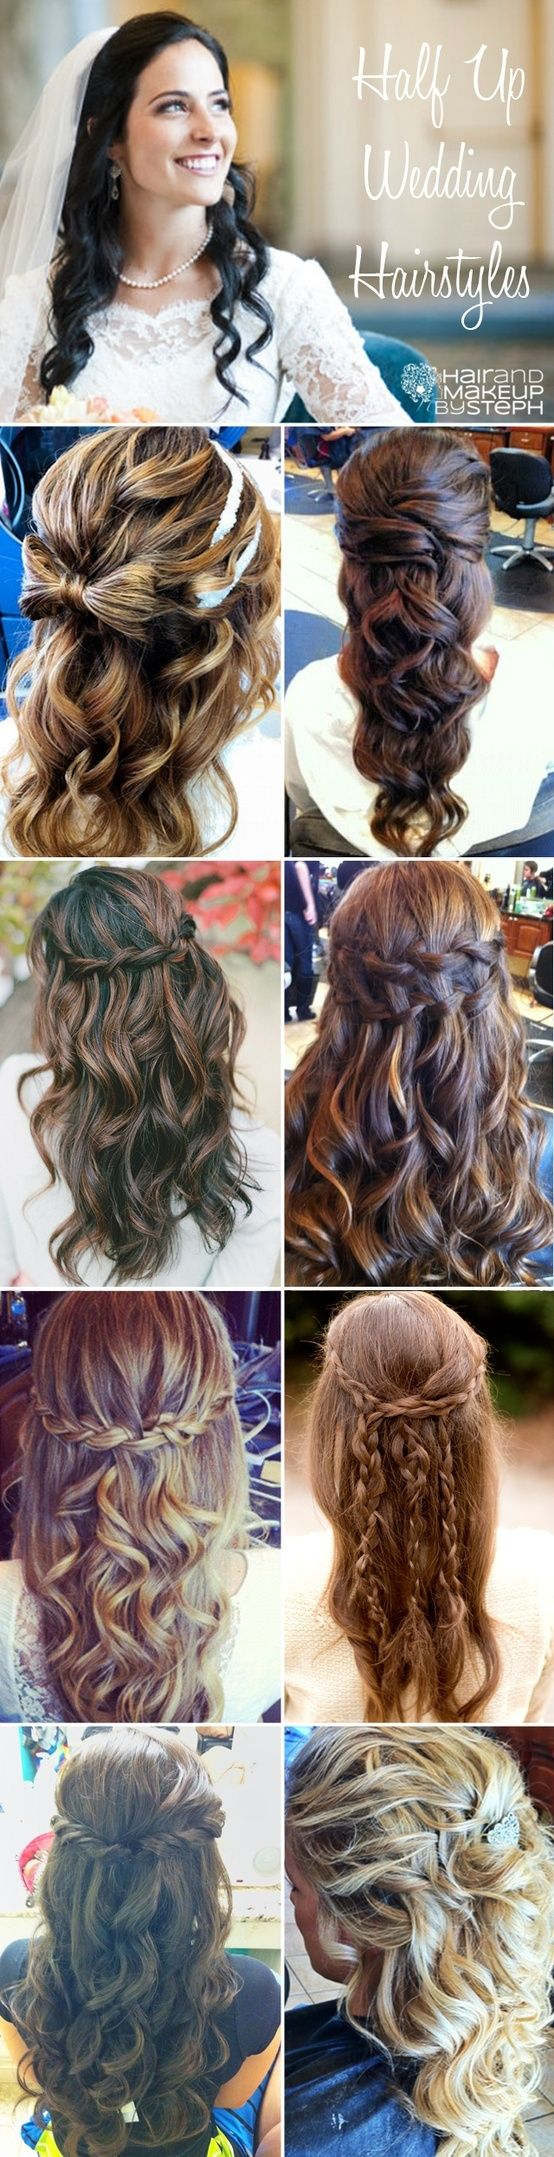 I definitely want a lot of hair down and curled, these are cute ideas. I love th...